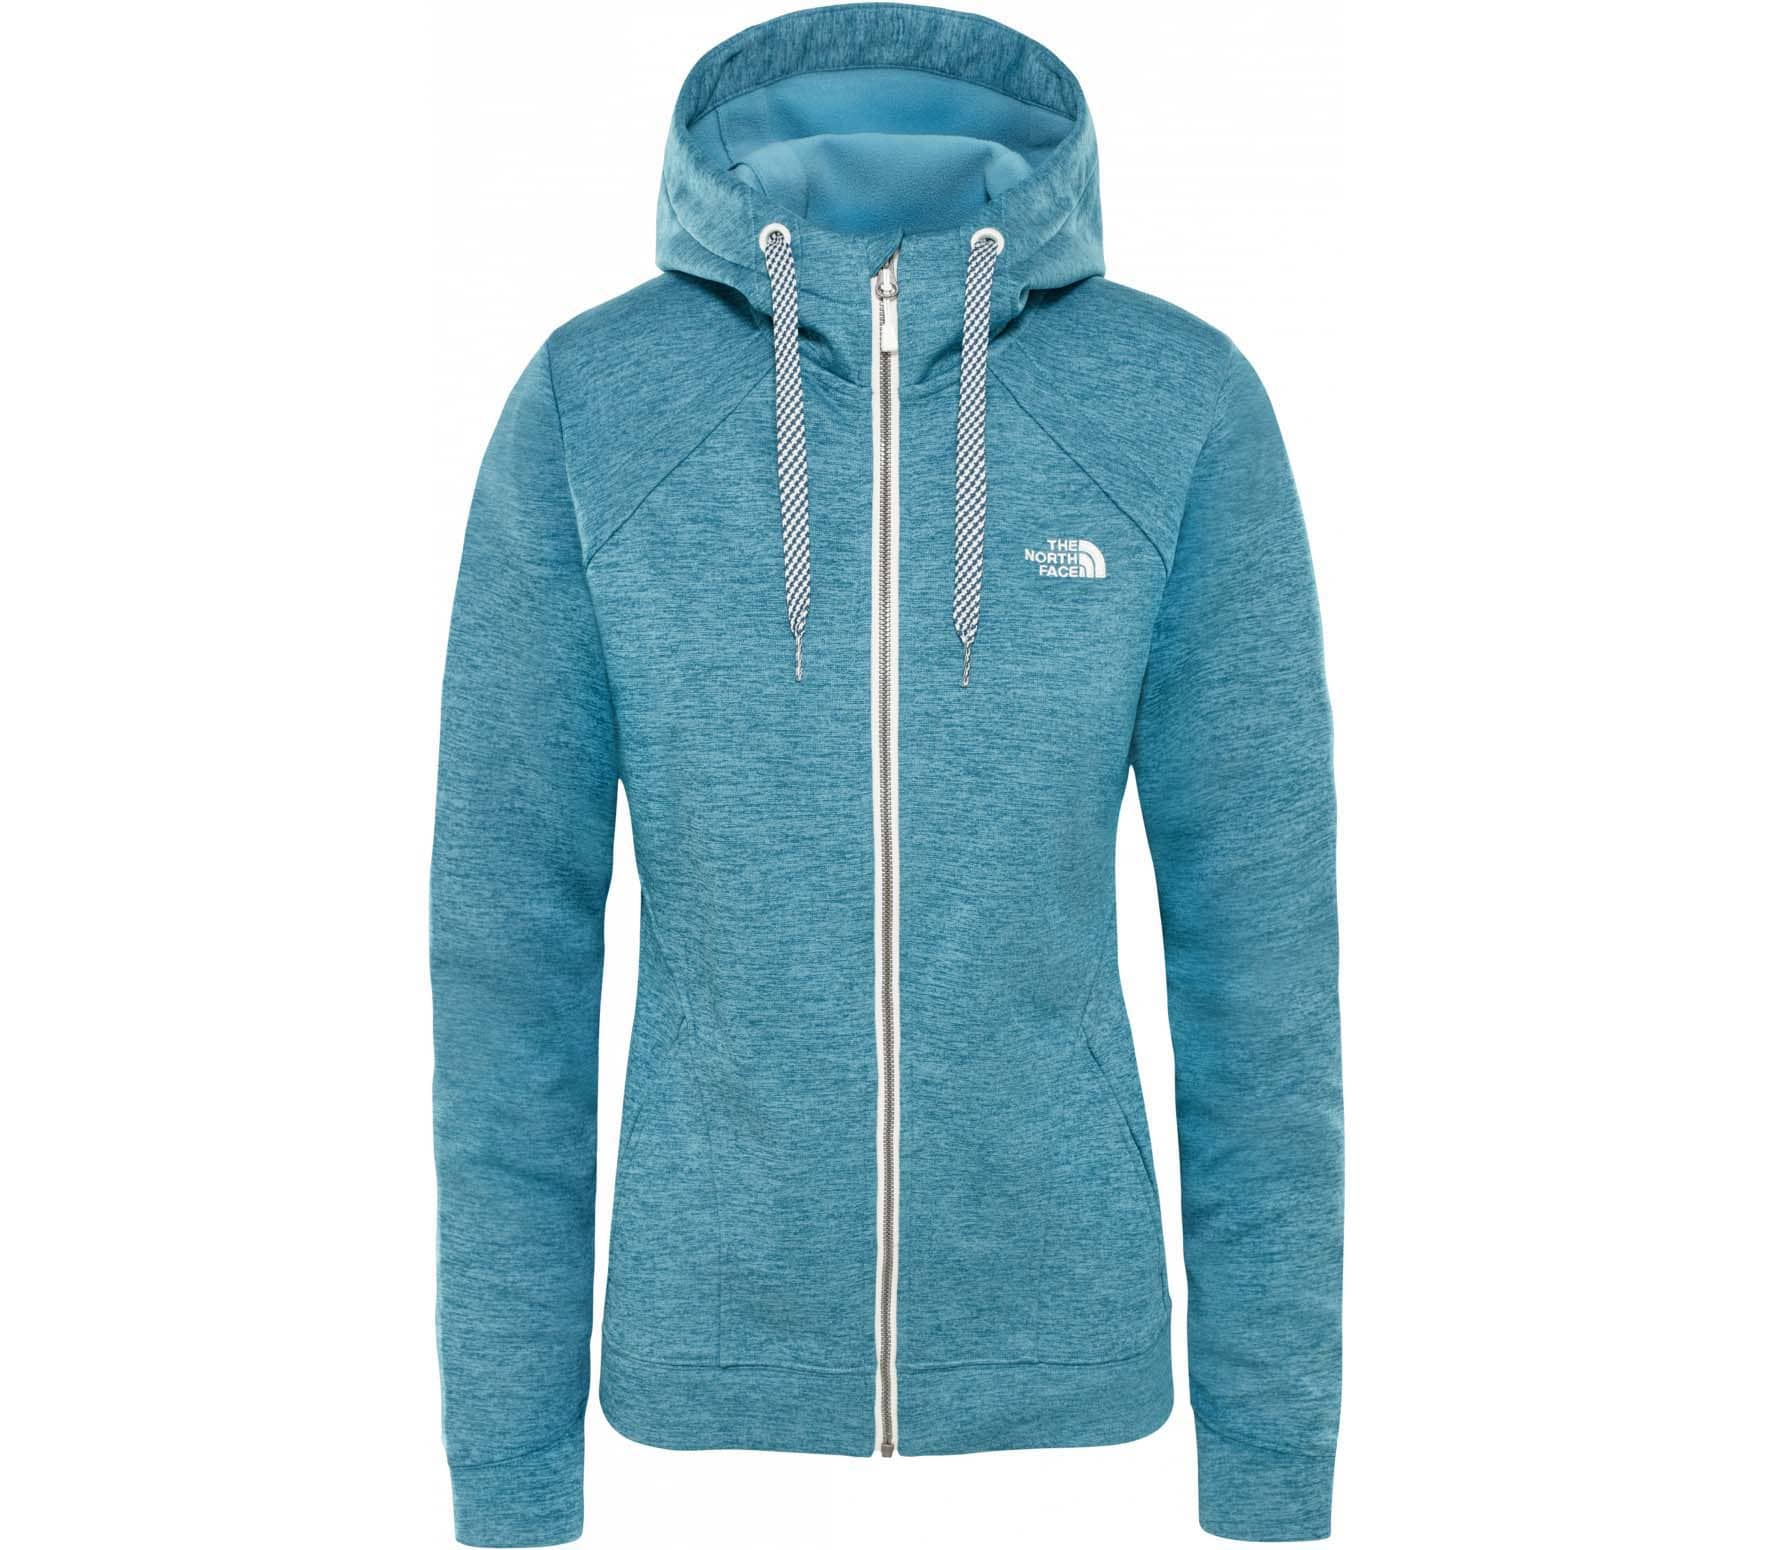 29dde4e206bf The North Face - Kutum Full Zip Kvinder fleece jakke (blå) Køb ...